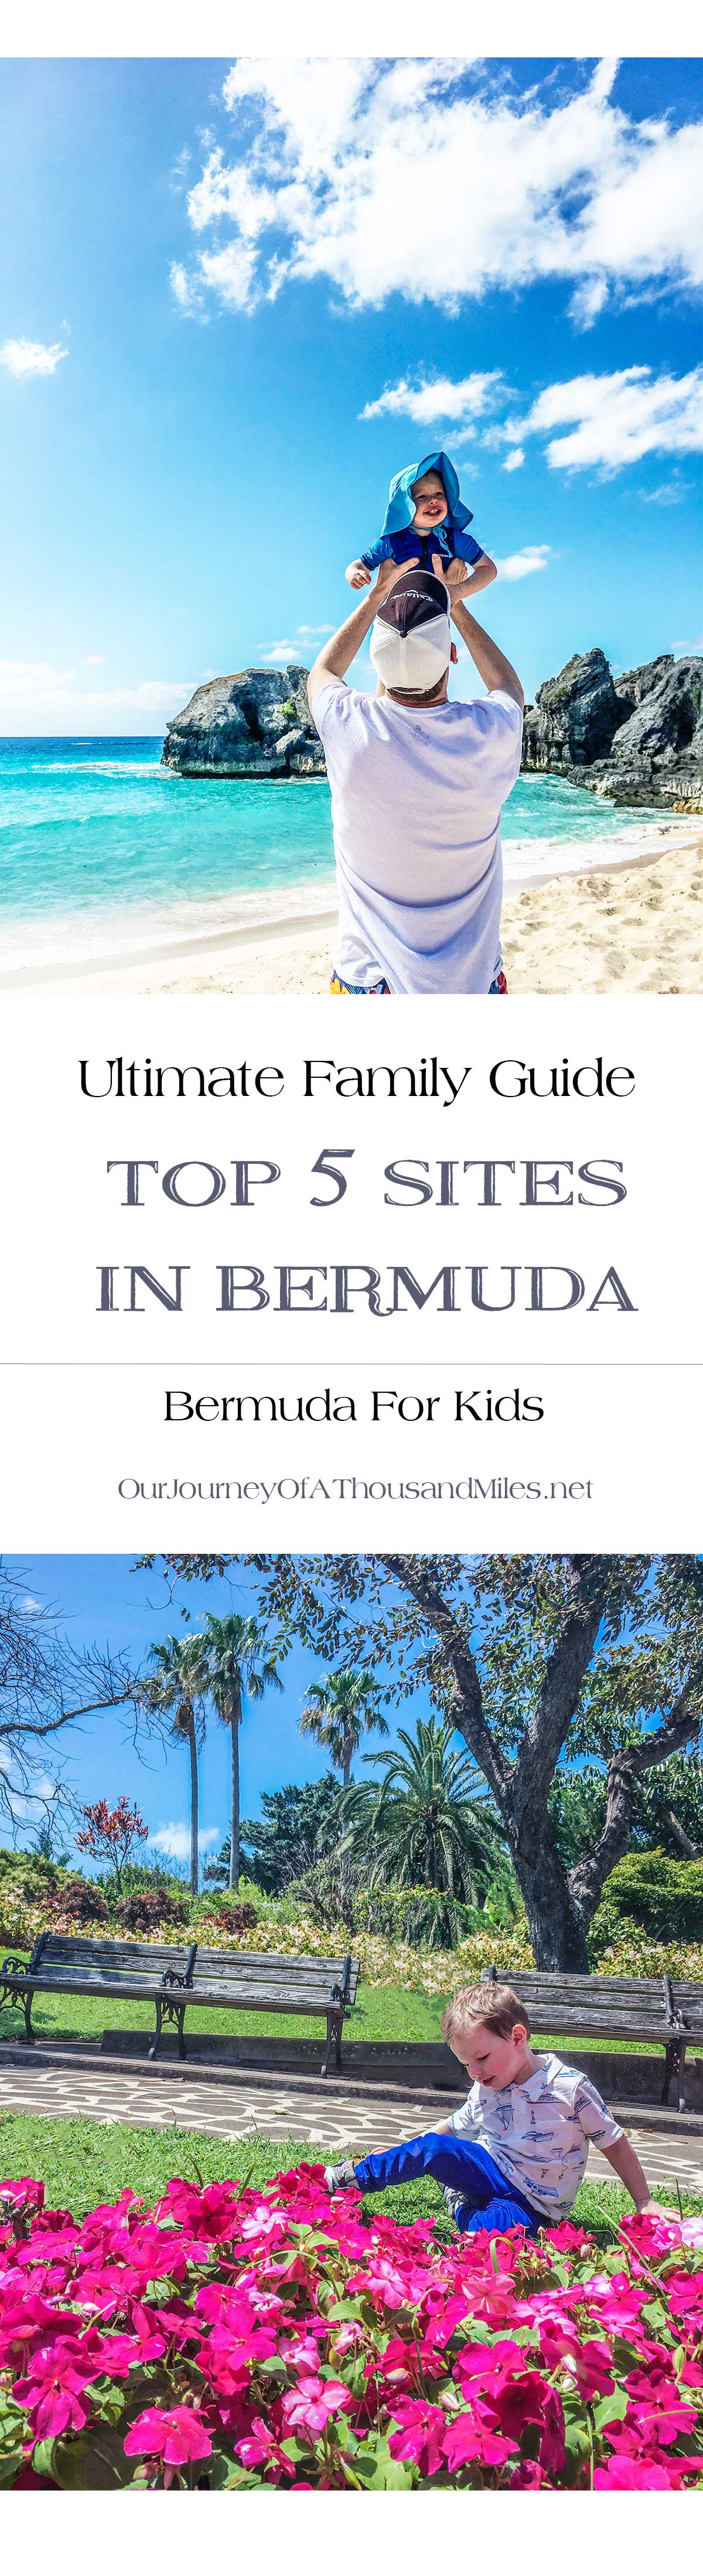 Ultimate-Family-Guide-Top-5-Sites-In-Bermuda-Bermuda-For-Kids